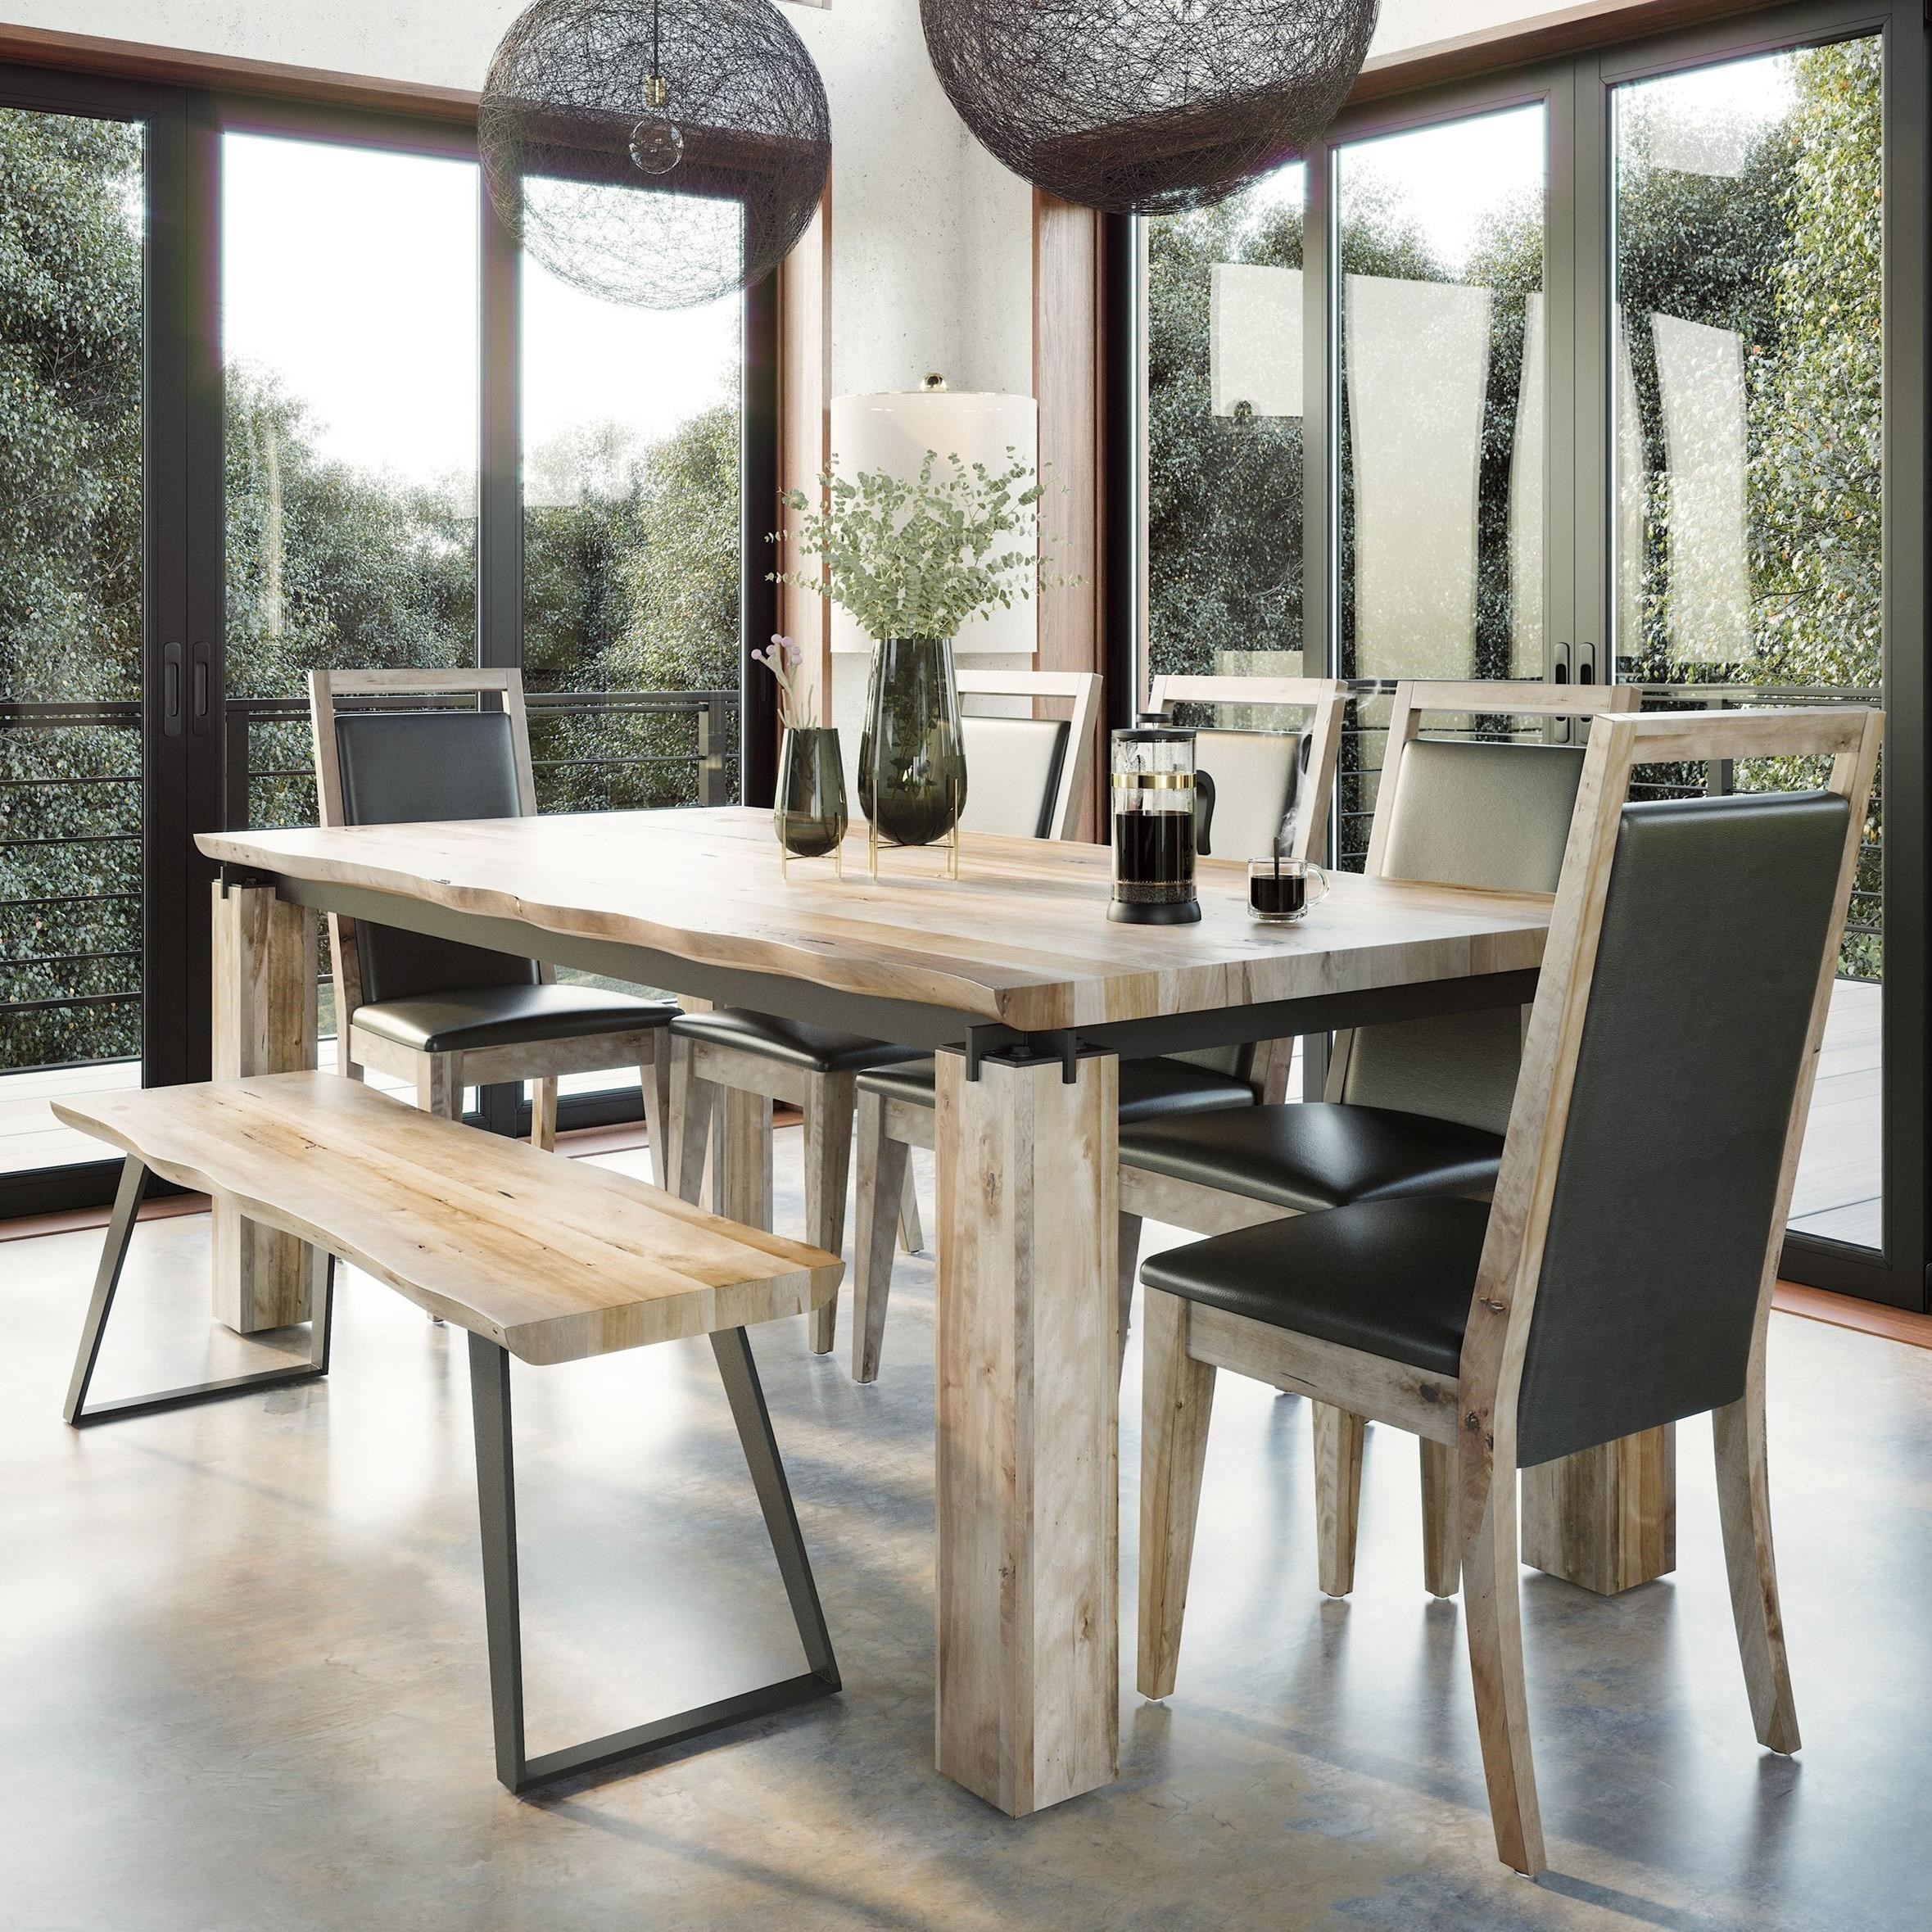 Customizable Live Edge Dining Table Set With Bench